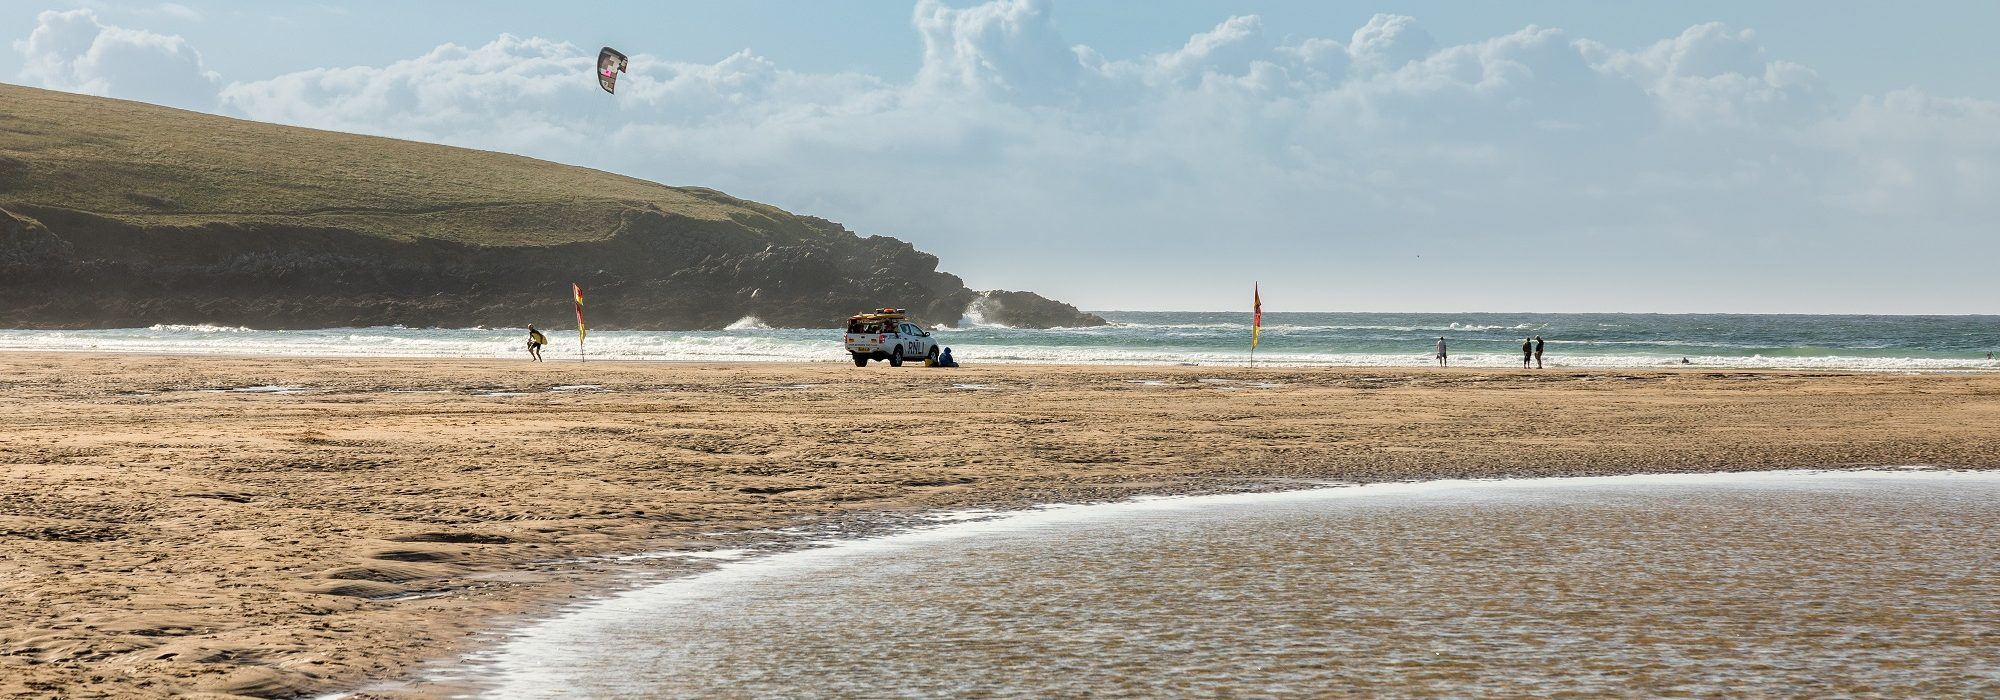 Crantock SLS Lifeguard.jpeg 2000x700 - Why buy from us